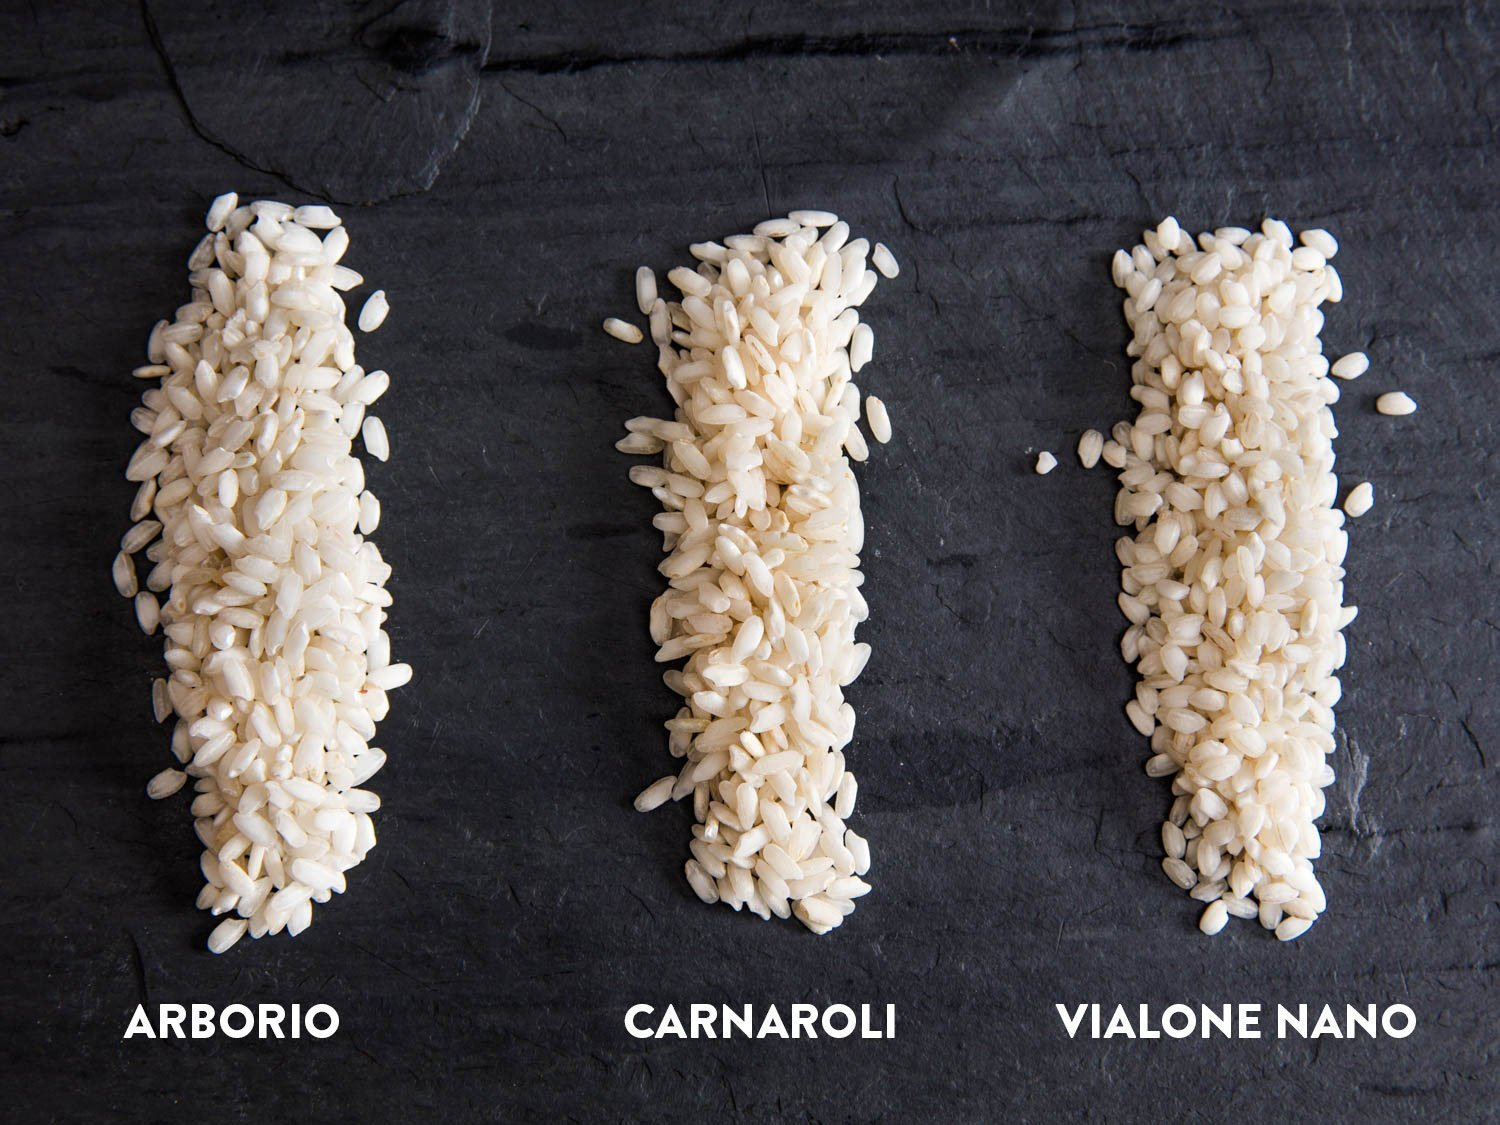 Aged Gourmet Carnaroli Risotto Rice - Real Aged Carnaroli Classico - Produced and Imported From Italy - by Serendipy Life (2.3 Lb) (1 Pack) by Serendipity Life